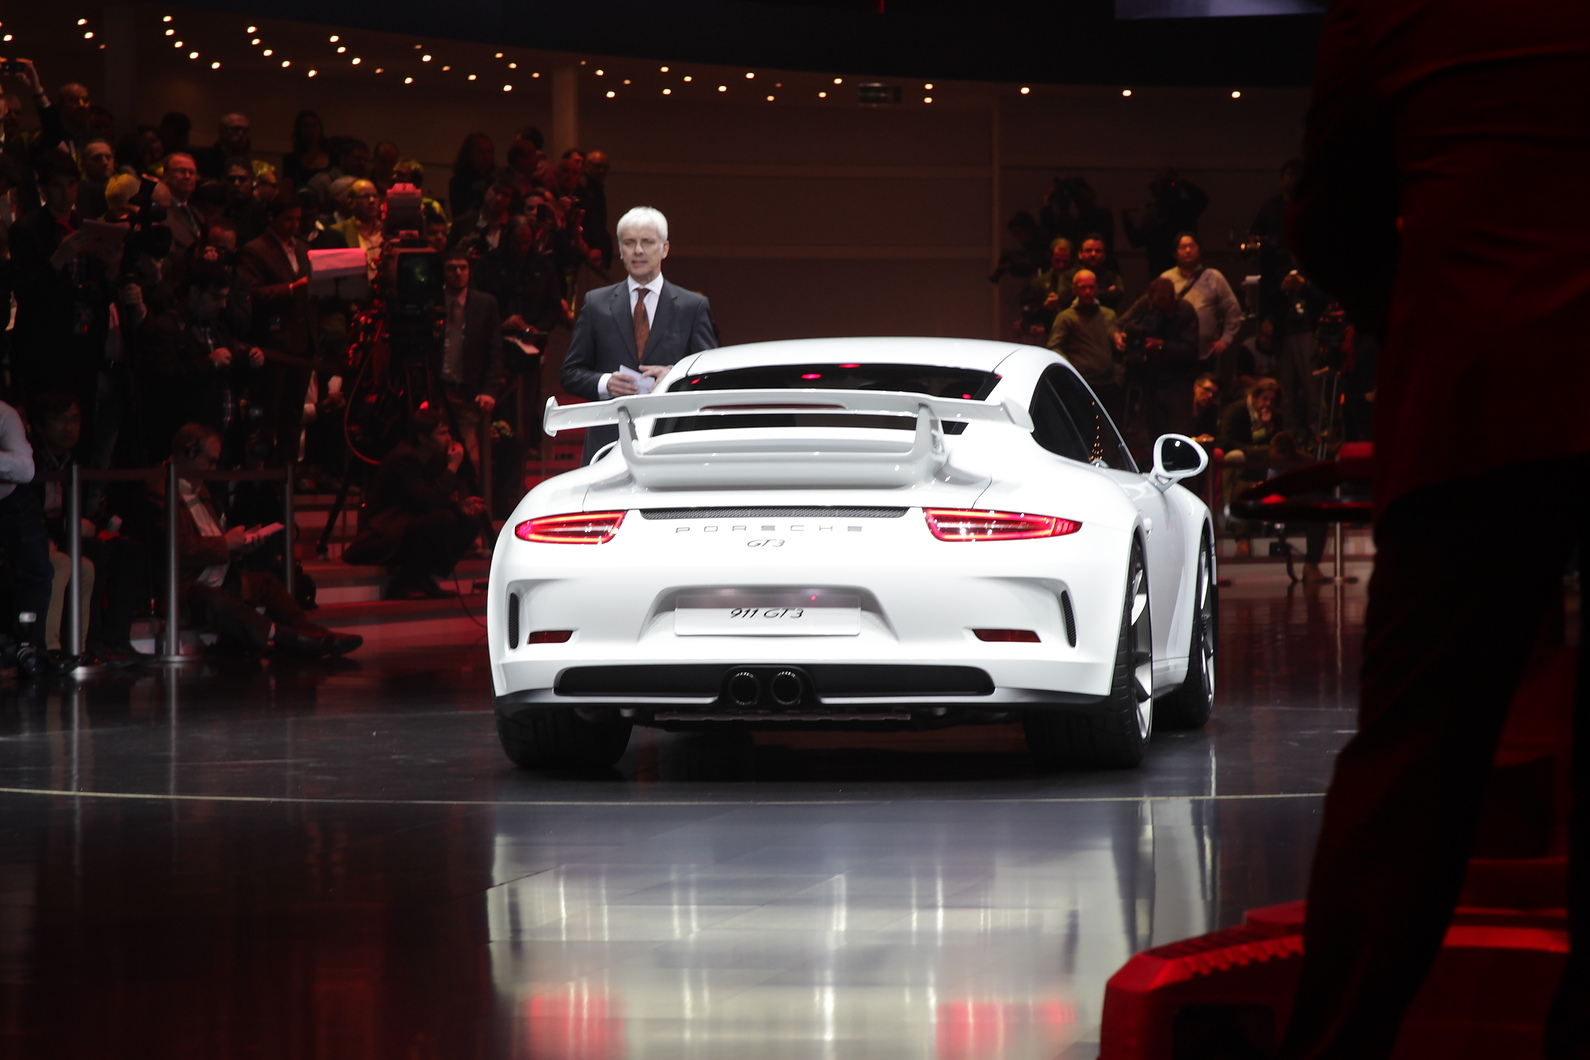 The new Porsche 911 GT3 does without a manual gearbox for the first time